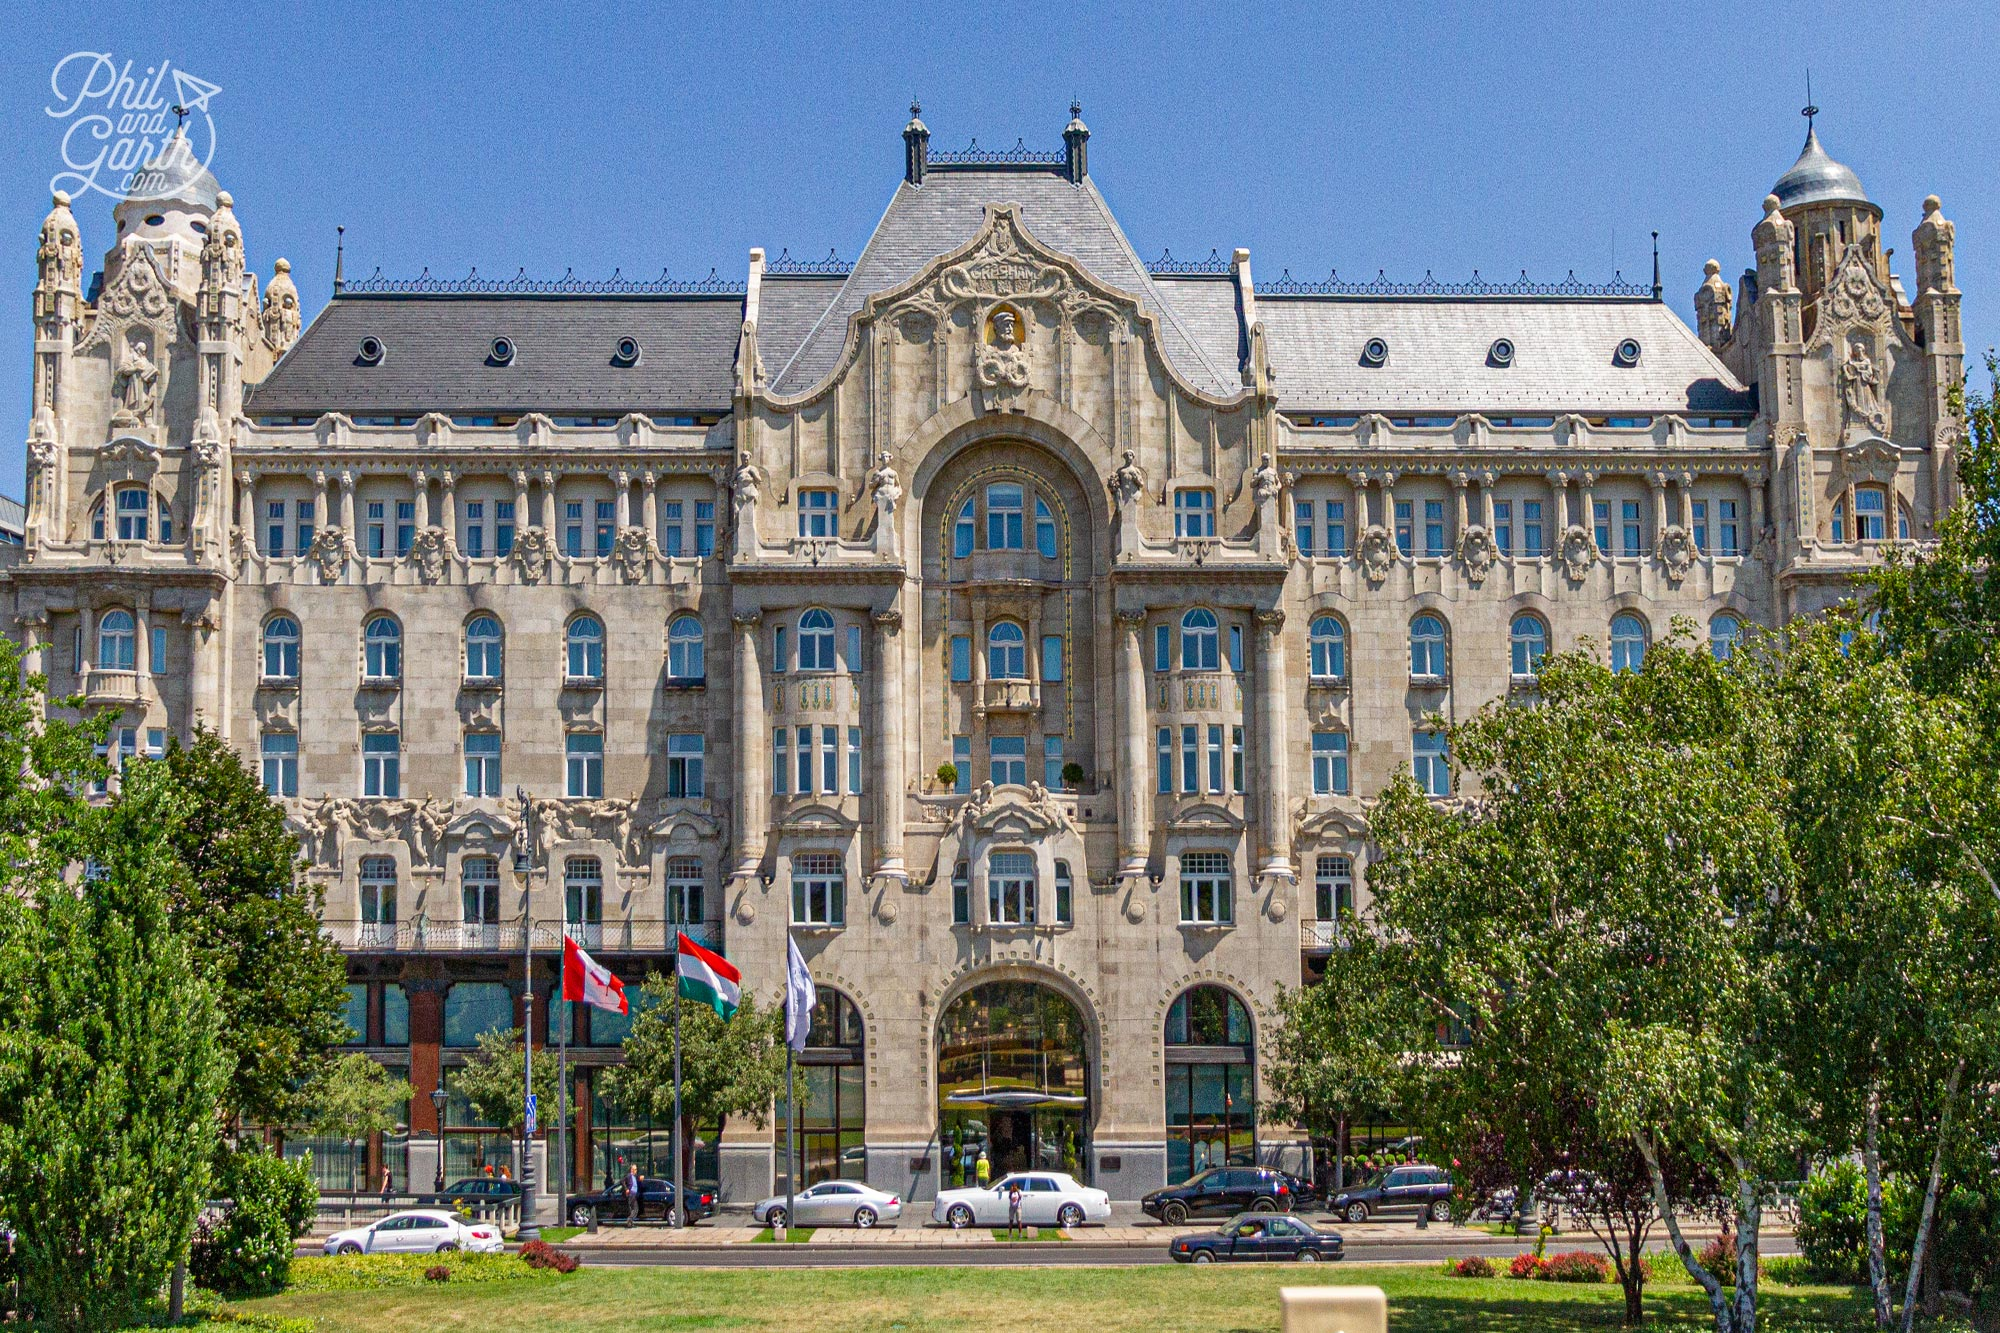 The Art Nouveau Gresham Palace now The Four Seasons luxury hotel - On our Budapest In 2 Days Itinerary